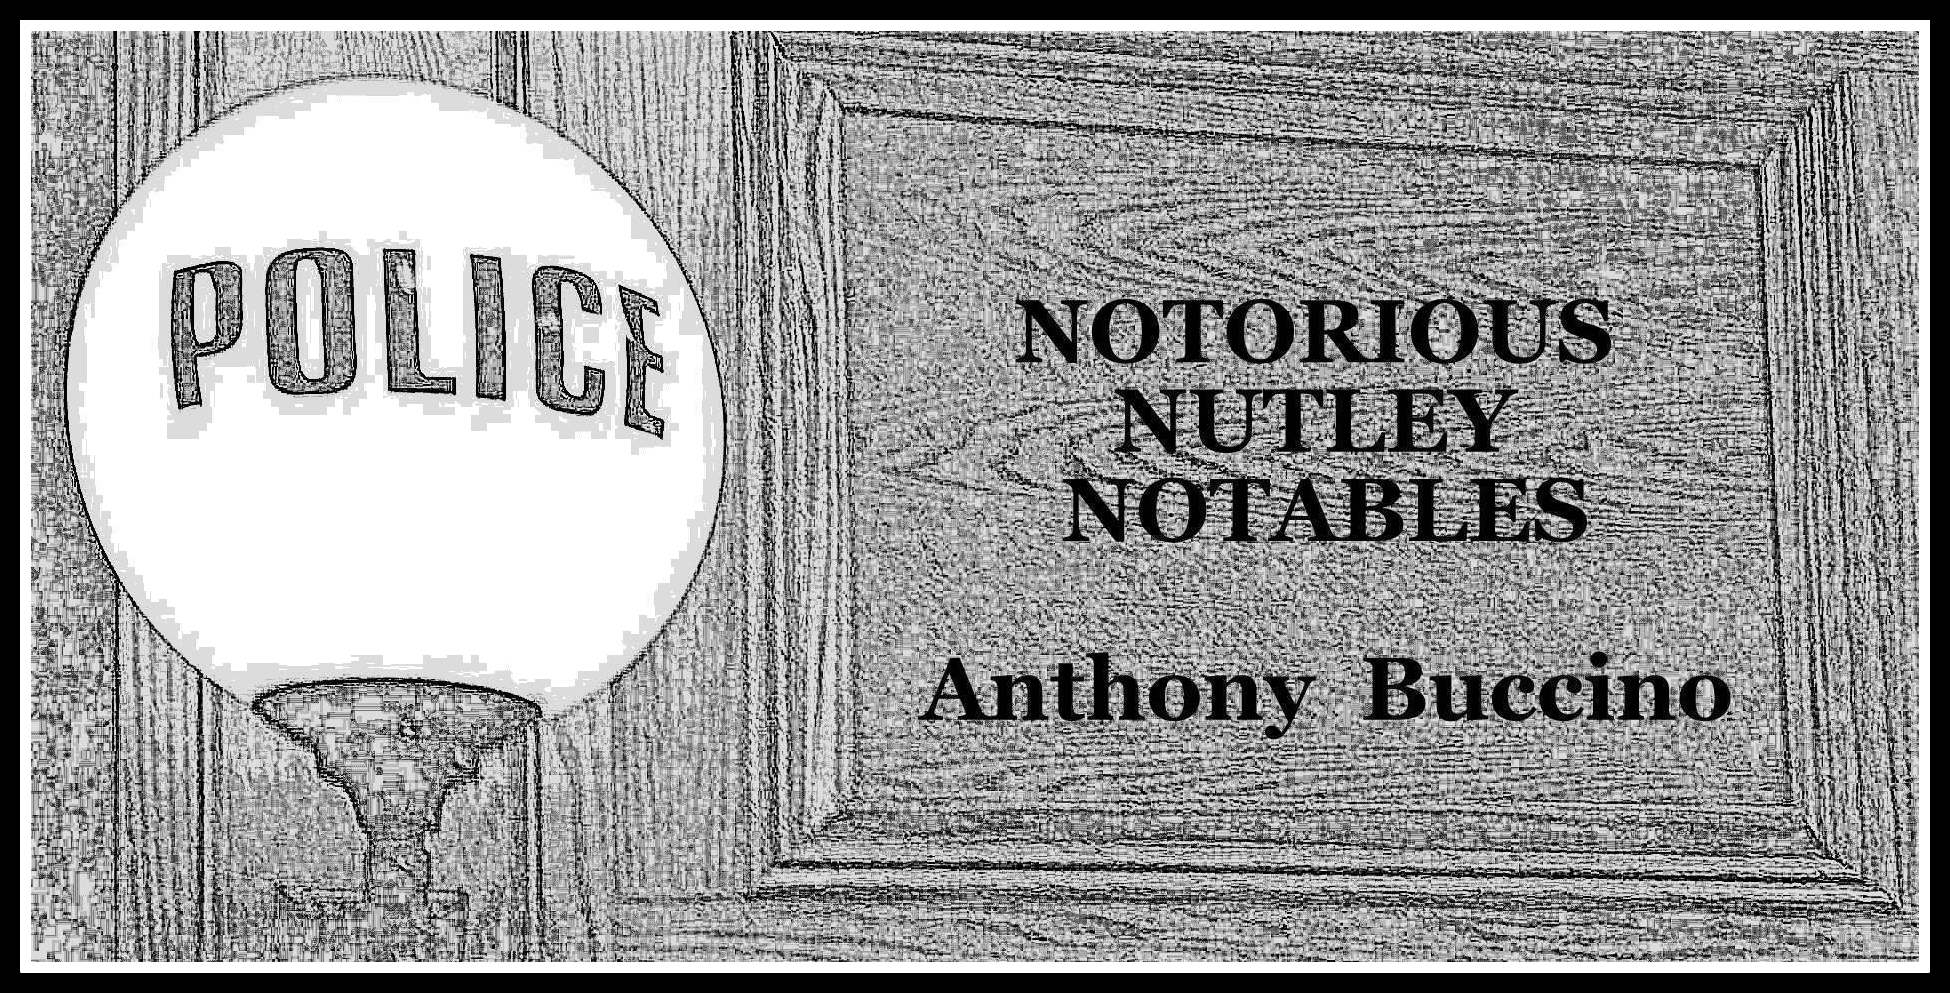 Notorious Nutley Notables - Murder, Major Crime, and the Loss of Innocents by Anthony Buccino